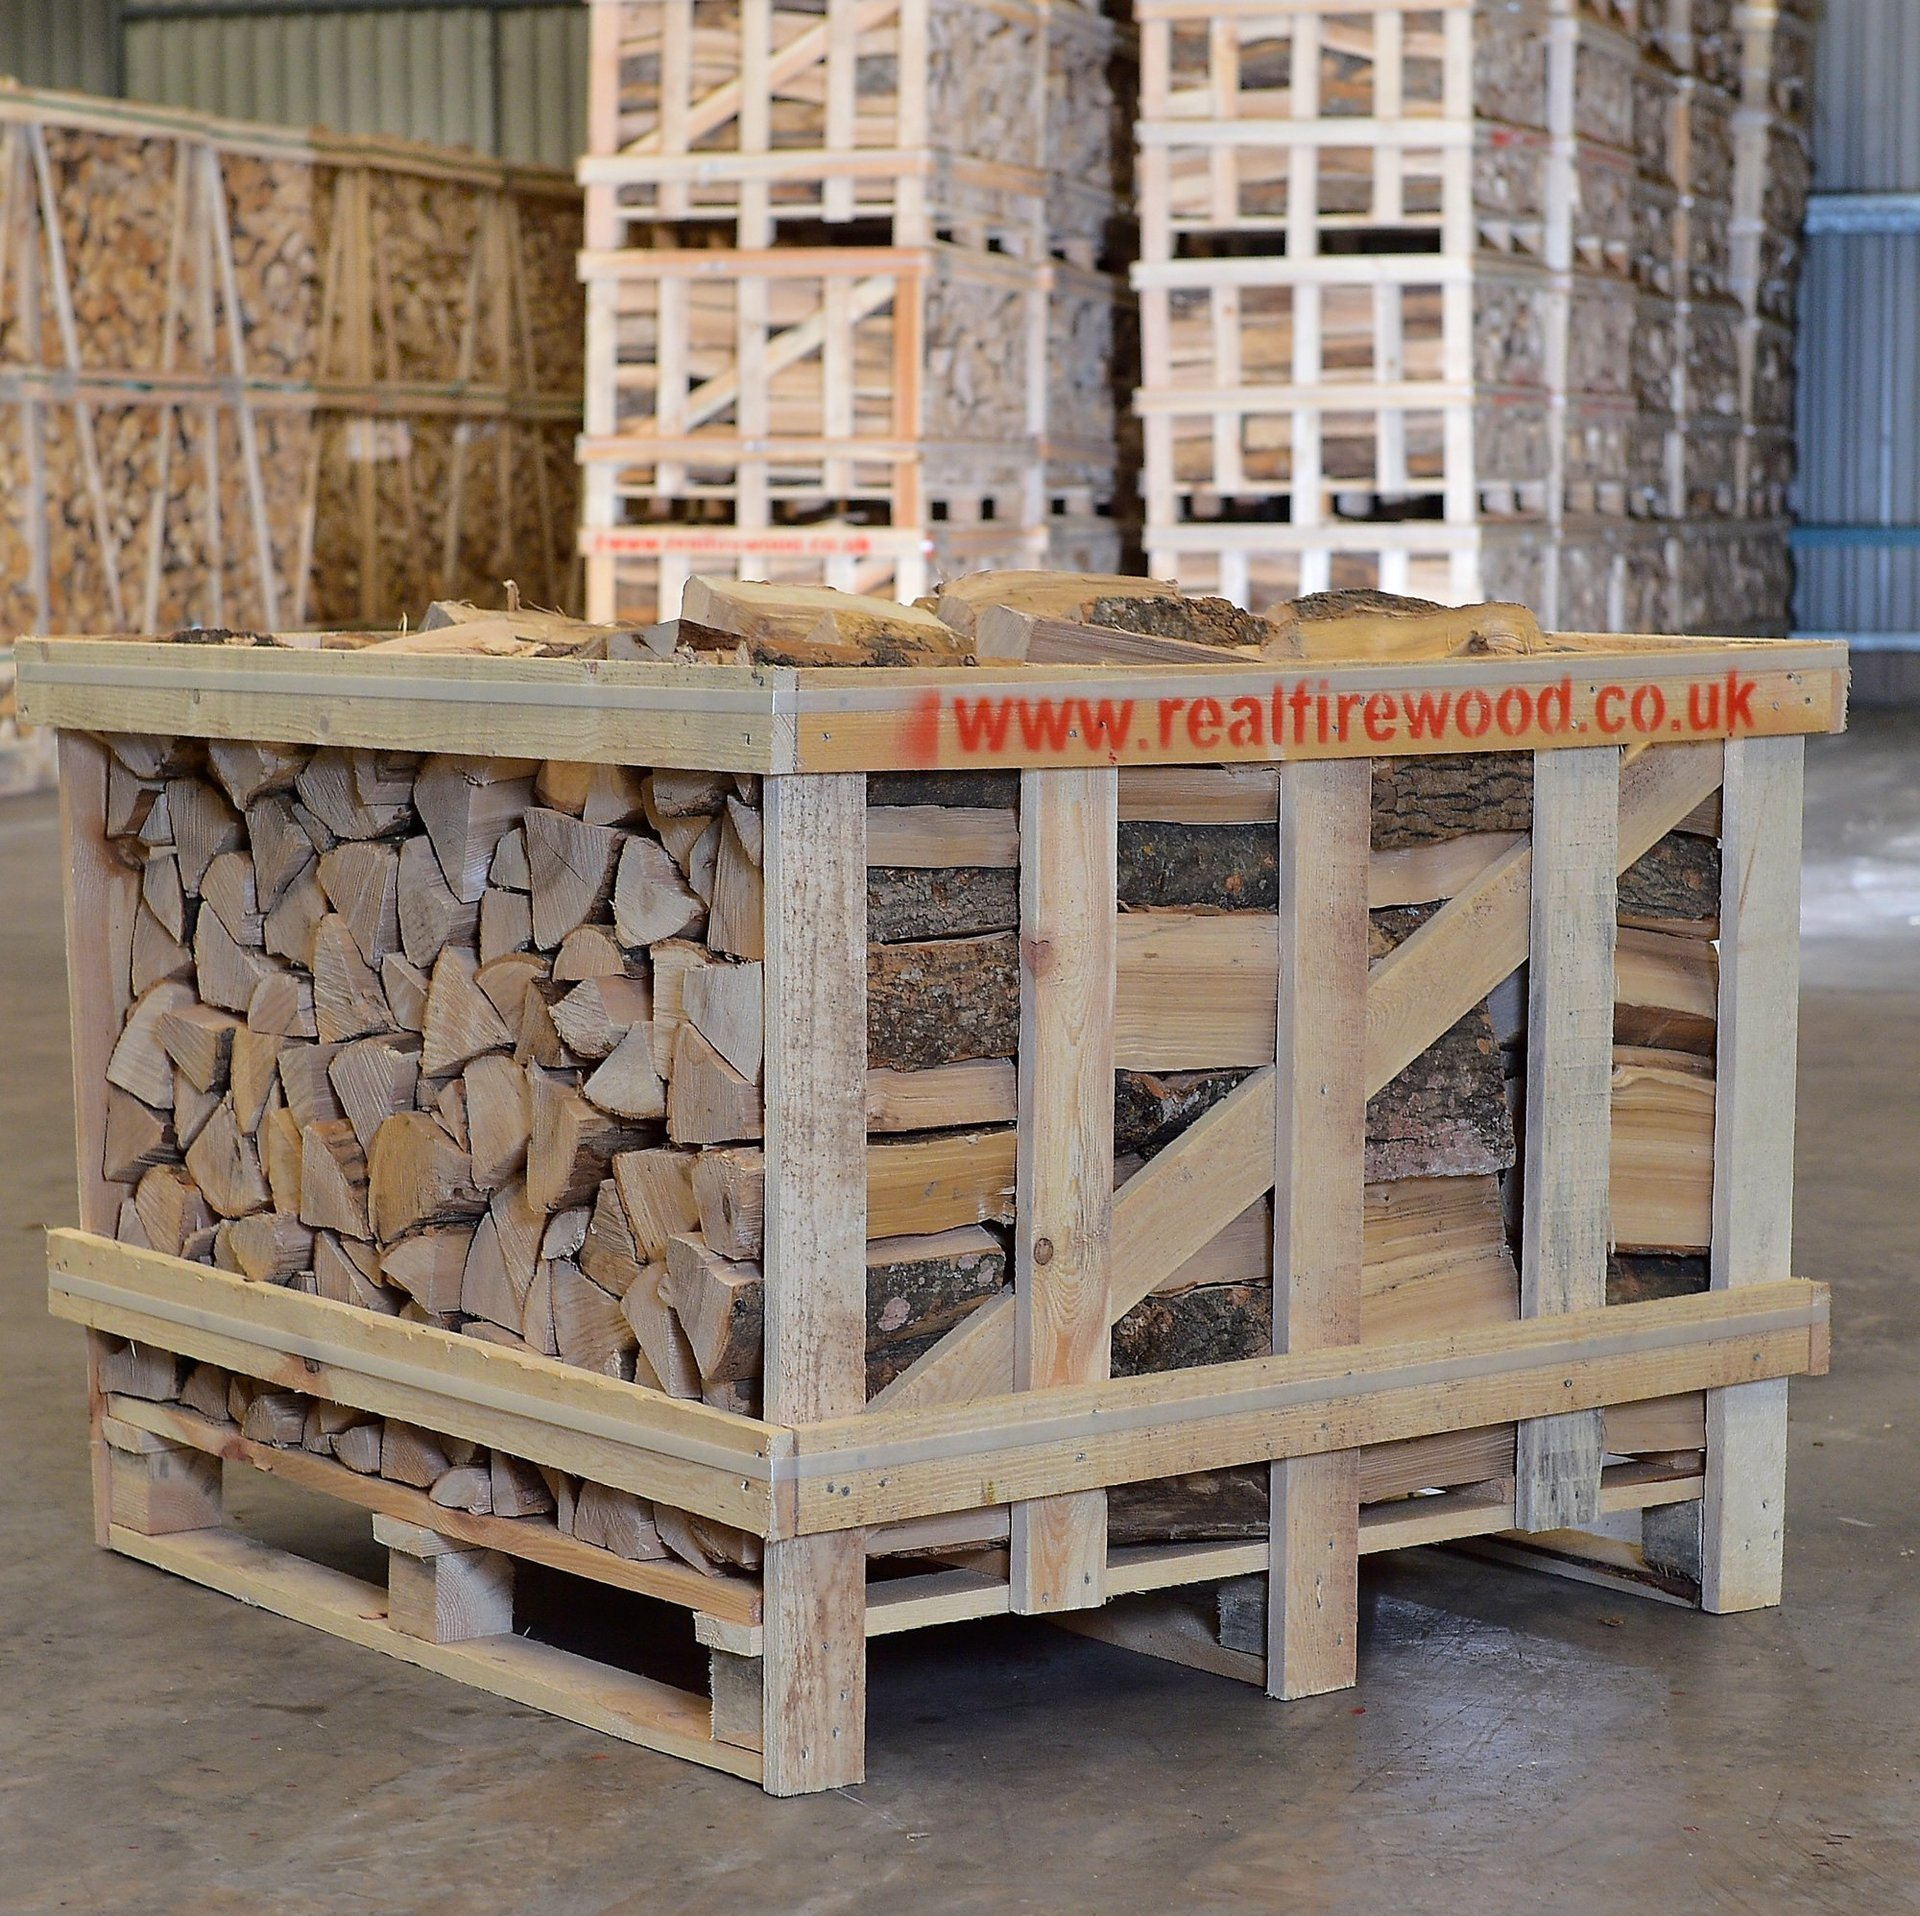 The real firewood company products